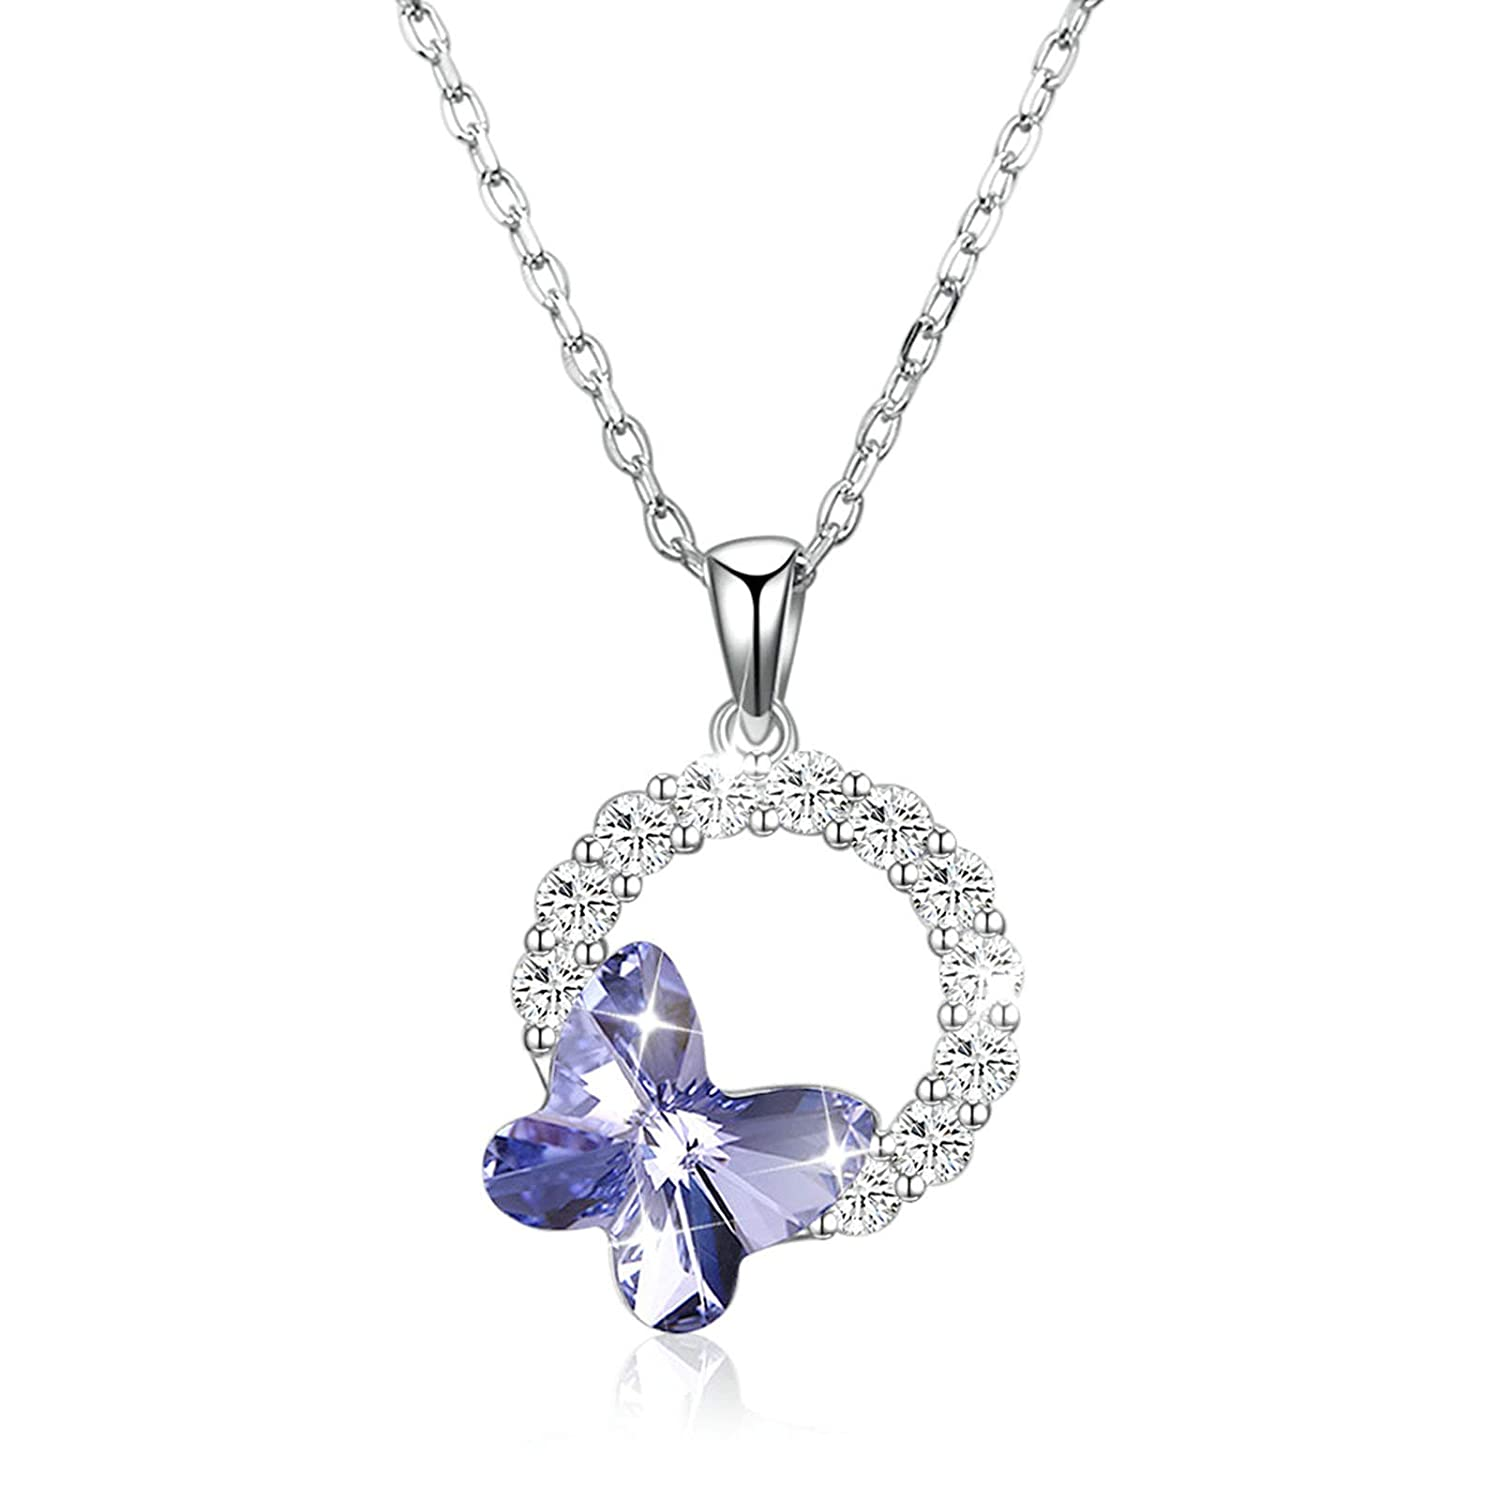 EoCot Silver Plated Nekclace Butterfly with Austrian Crystal Round Pendant for Women Girls